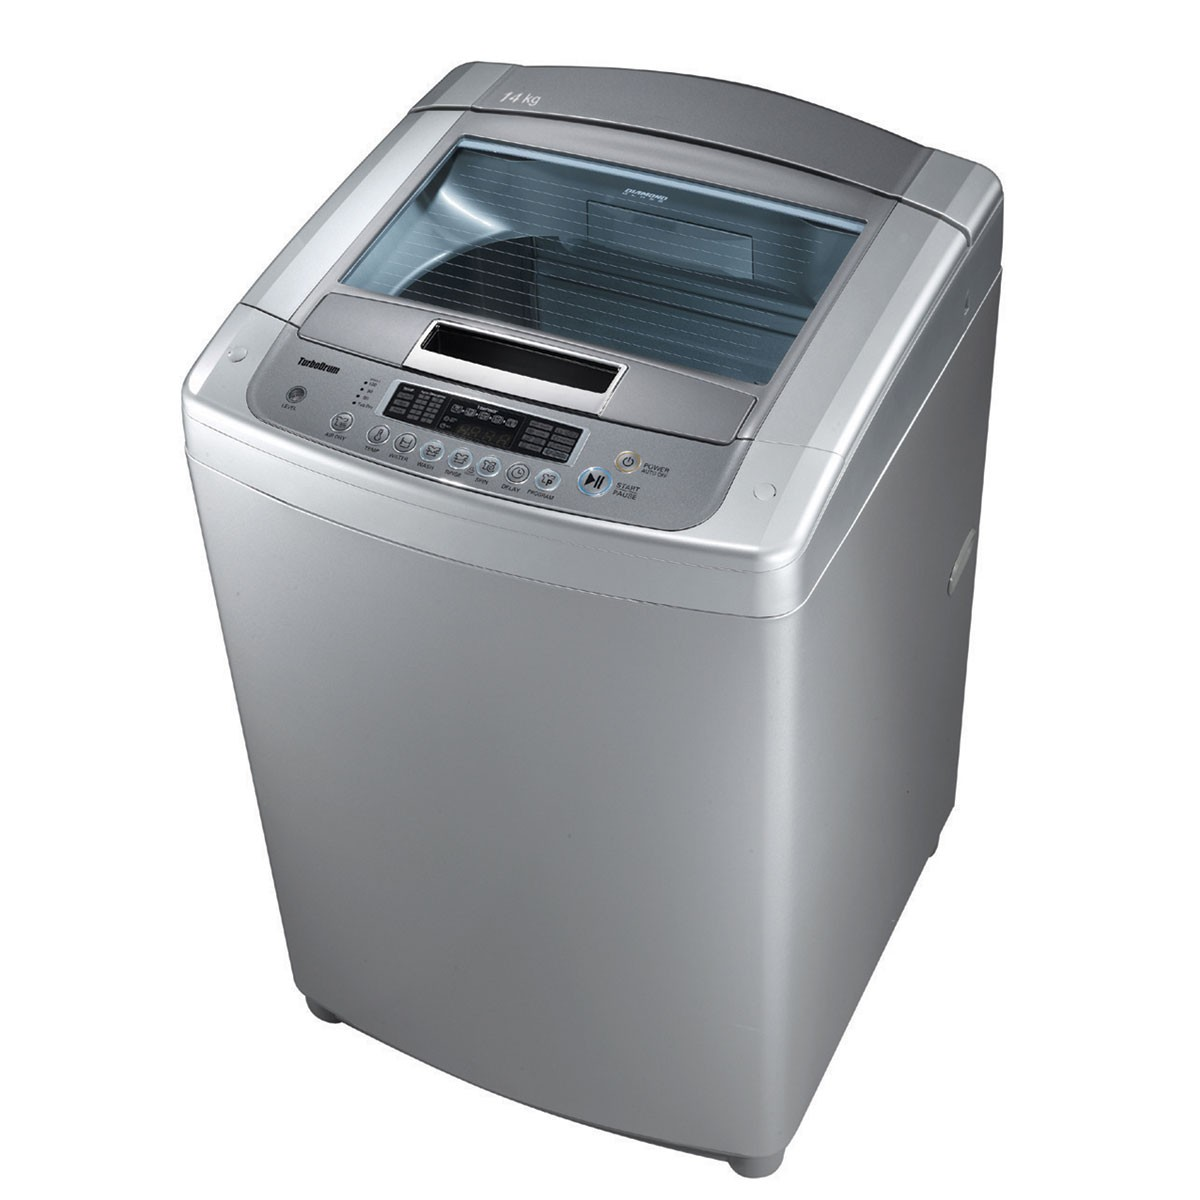 The best top load washer on the market - Top Load Washer